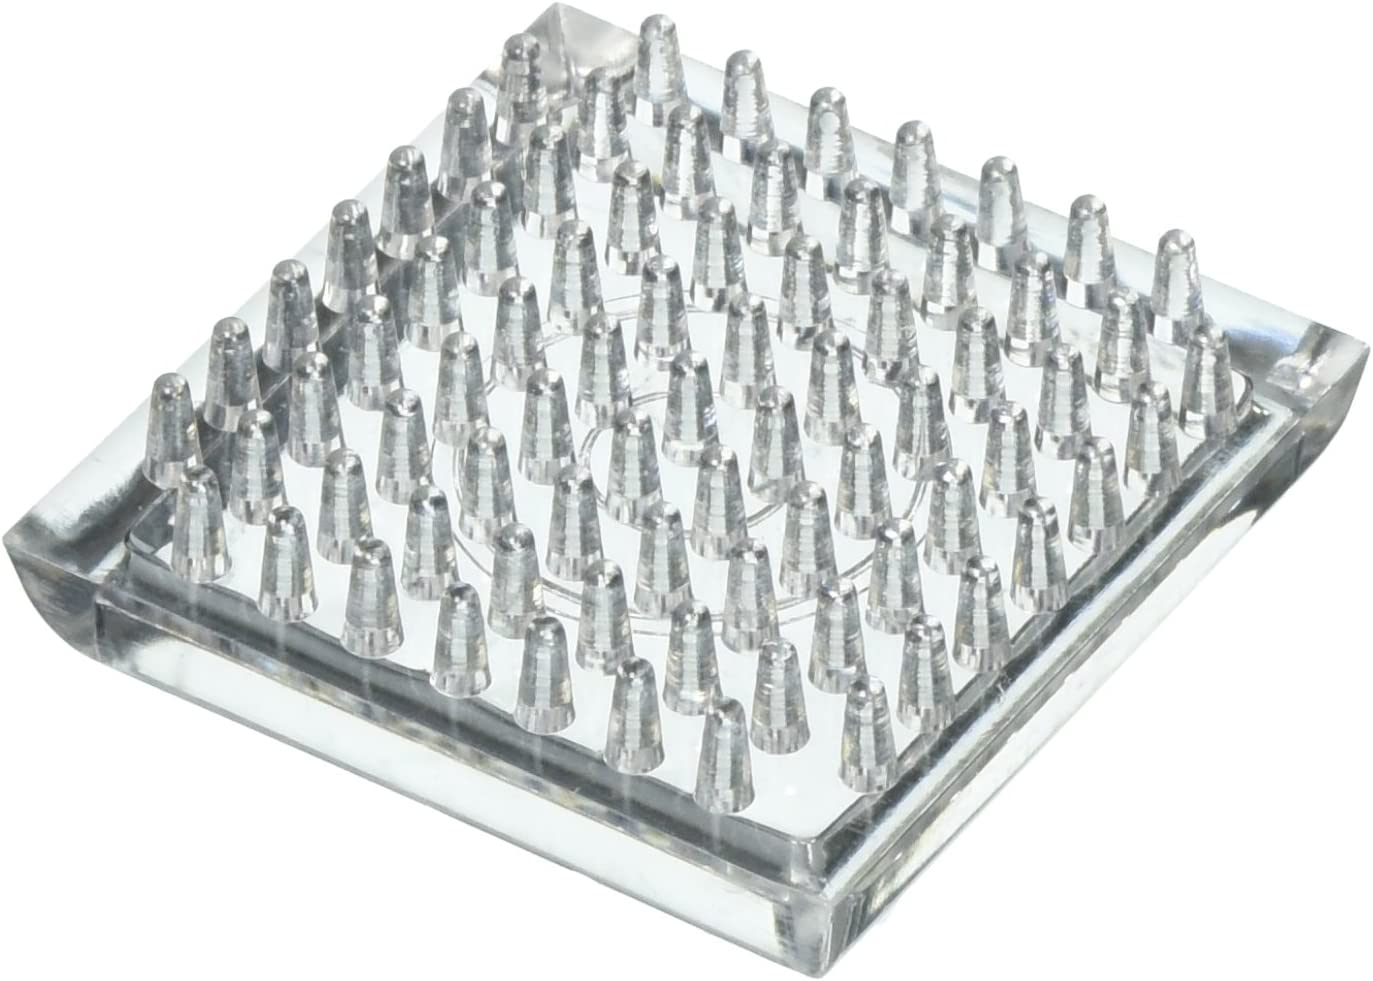 PROSOURCE FE-50890-PS Spiked Caster Furniture Glide, L X 1.812 in W, Square/Cup